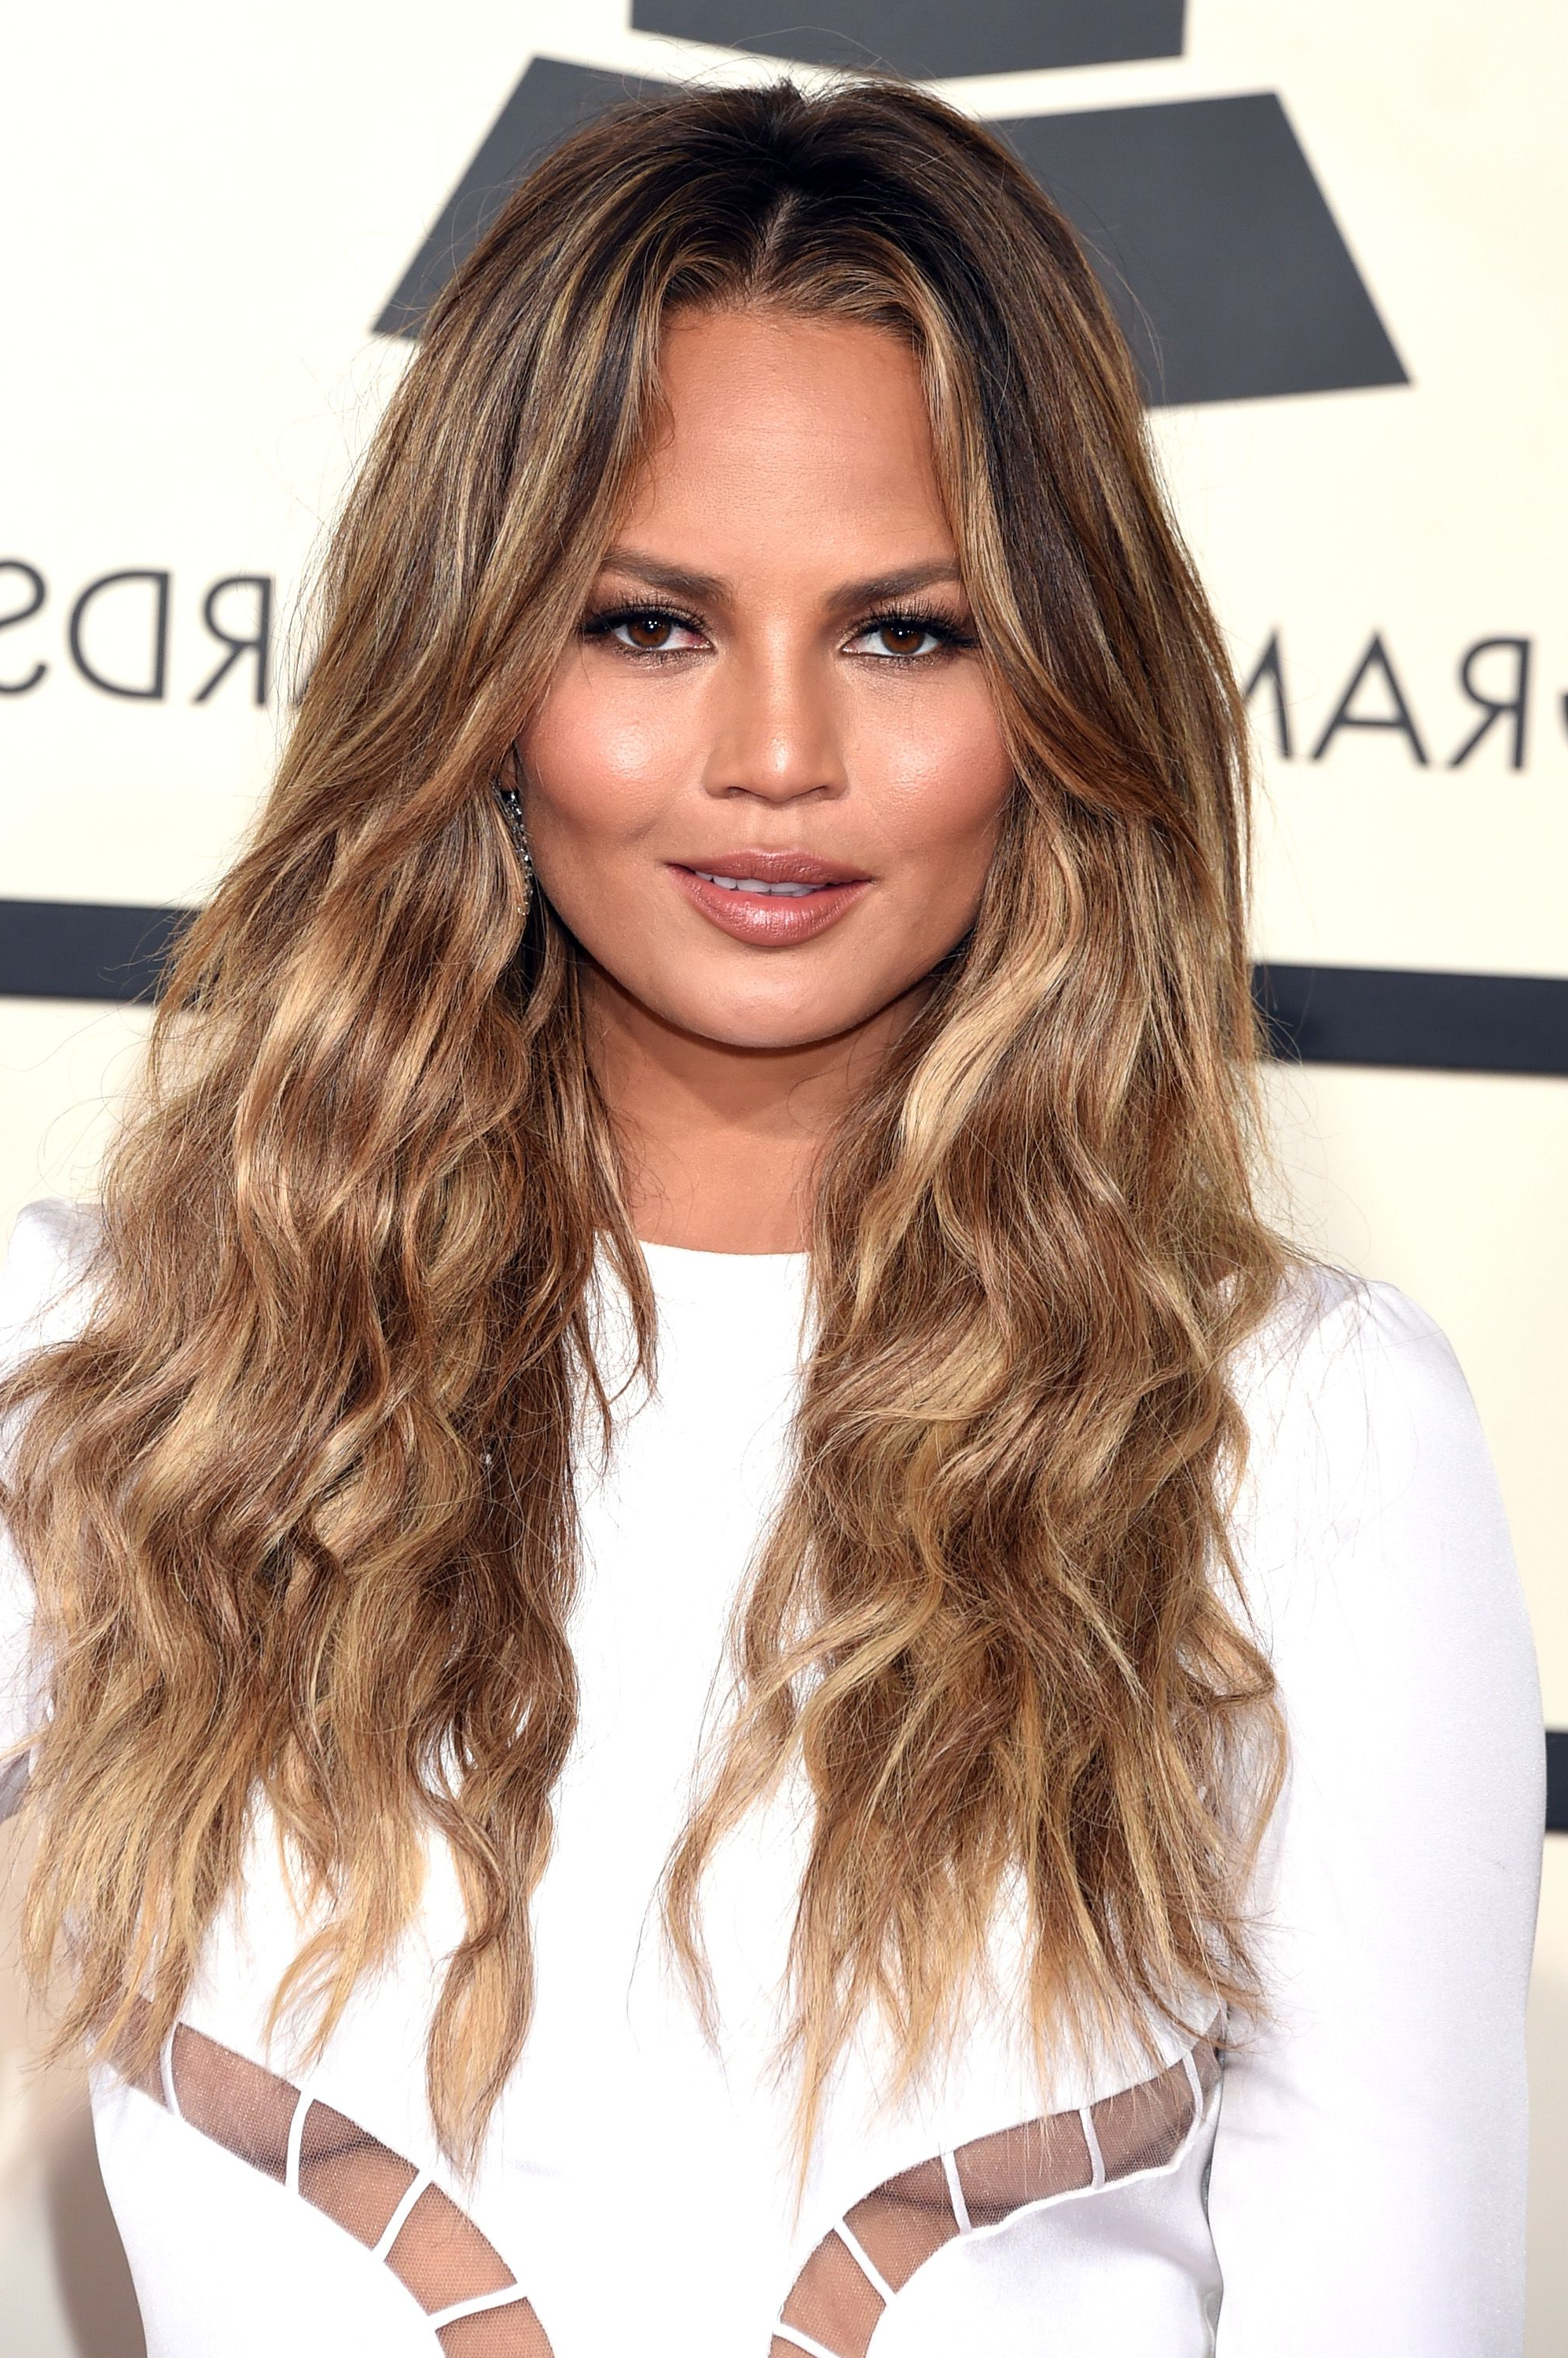 53 Best Layered Haircuts, Hairstyles & Trends For 2019 Intended For Most Recently Released Wavy Lob Hairstyles With Face Framing Highlights (View 5 of 20)